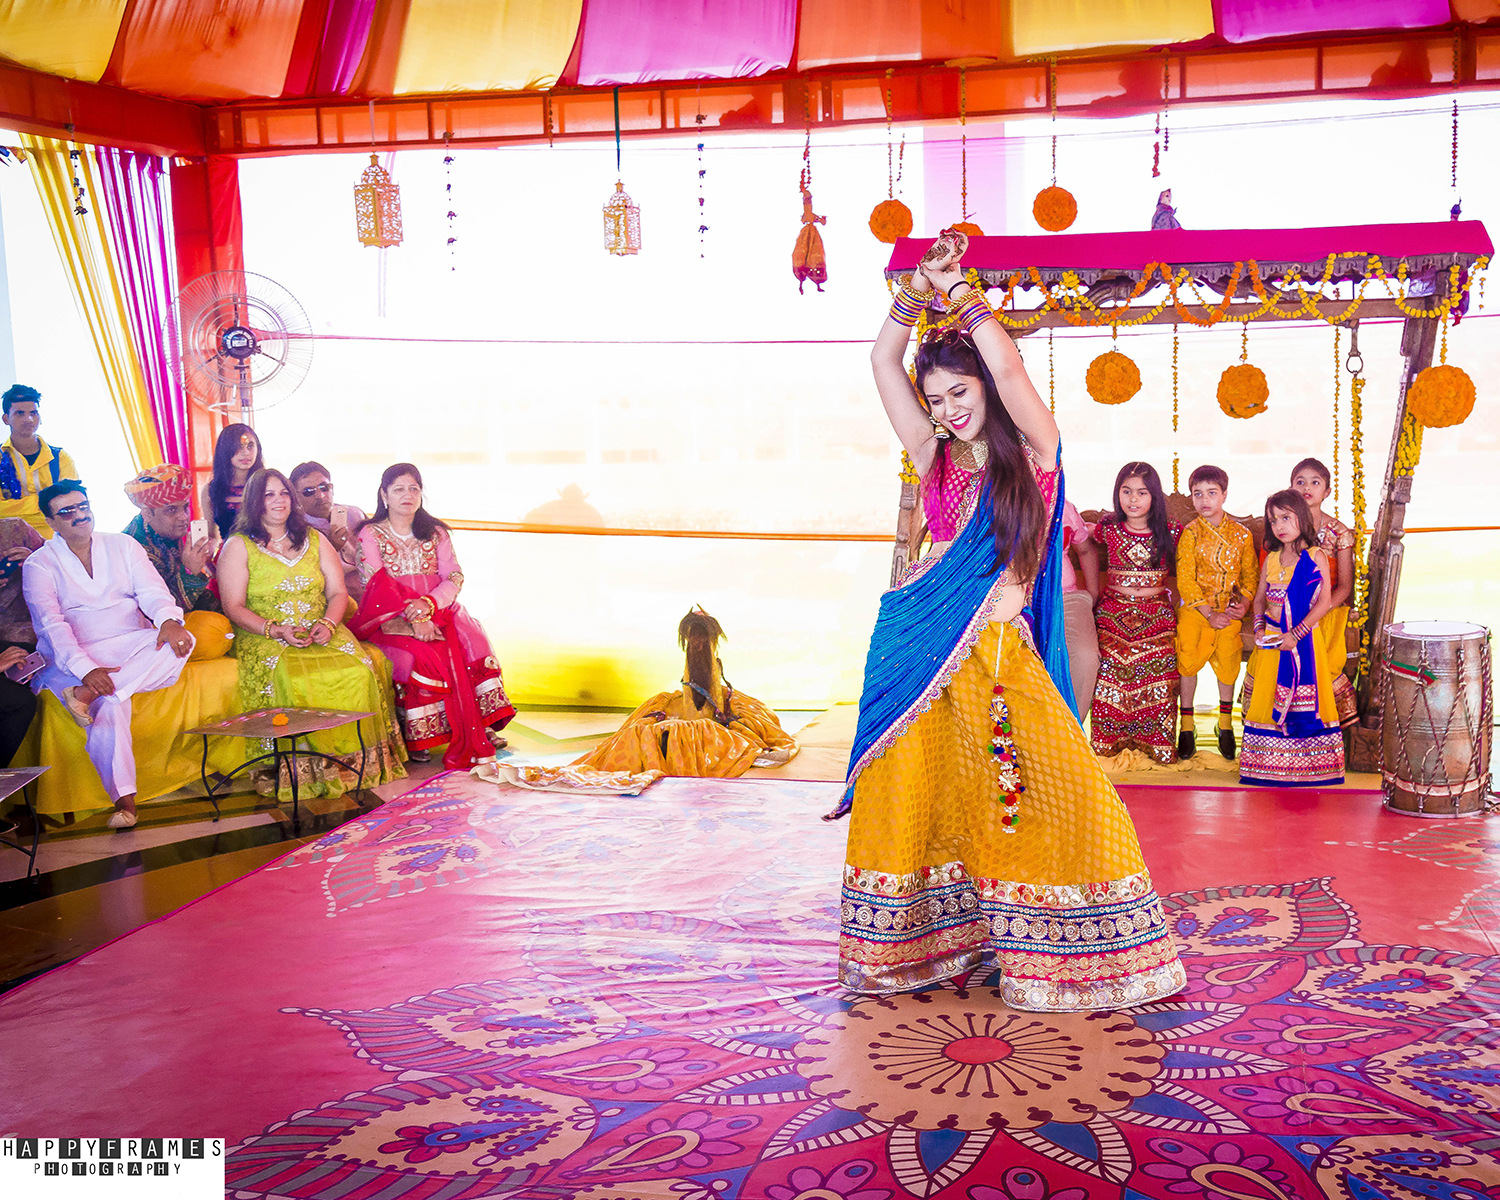 the wedding celebration!:amrapali jewellery, happyframes photography